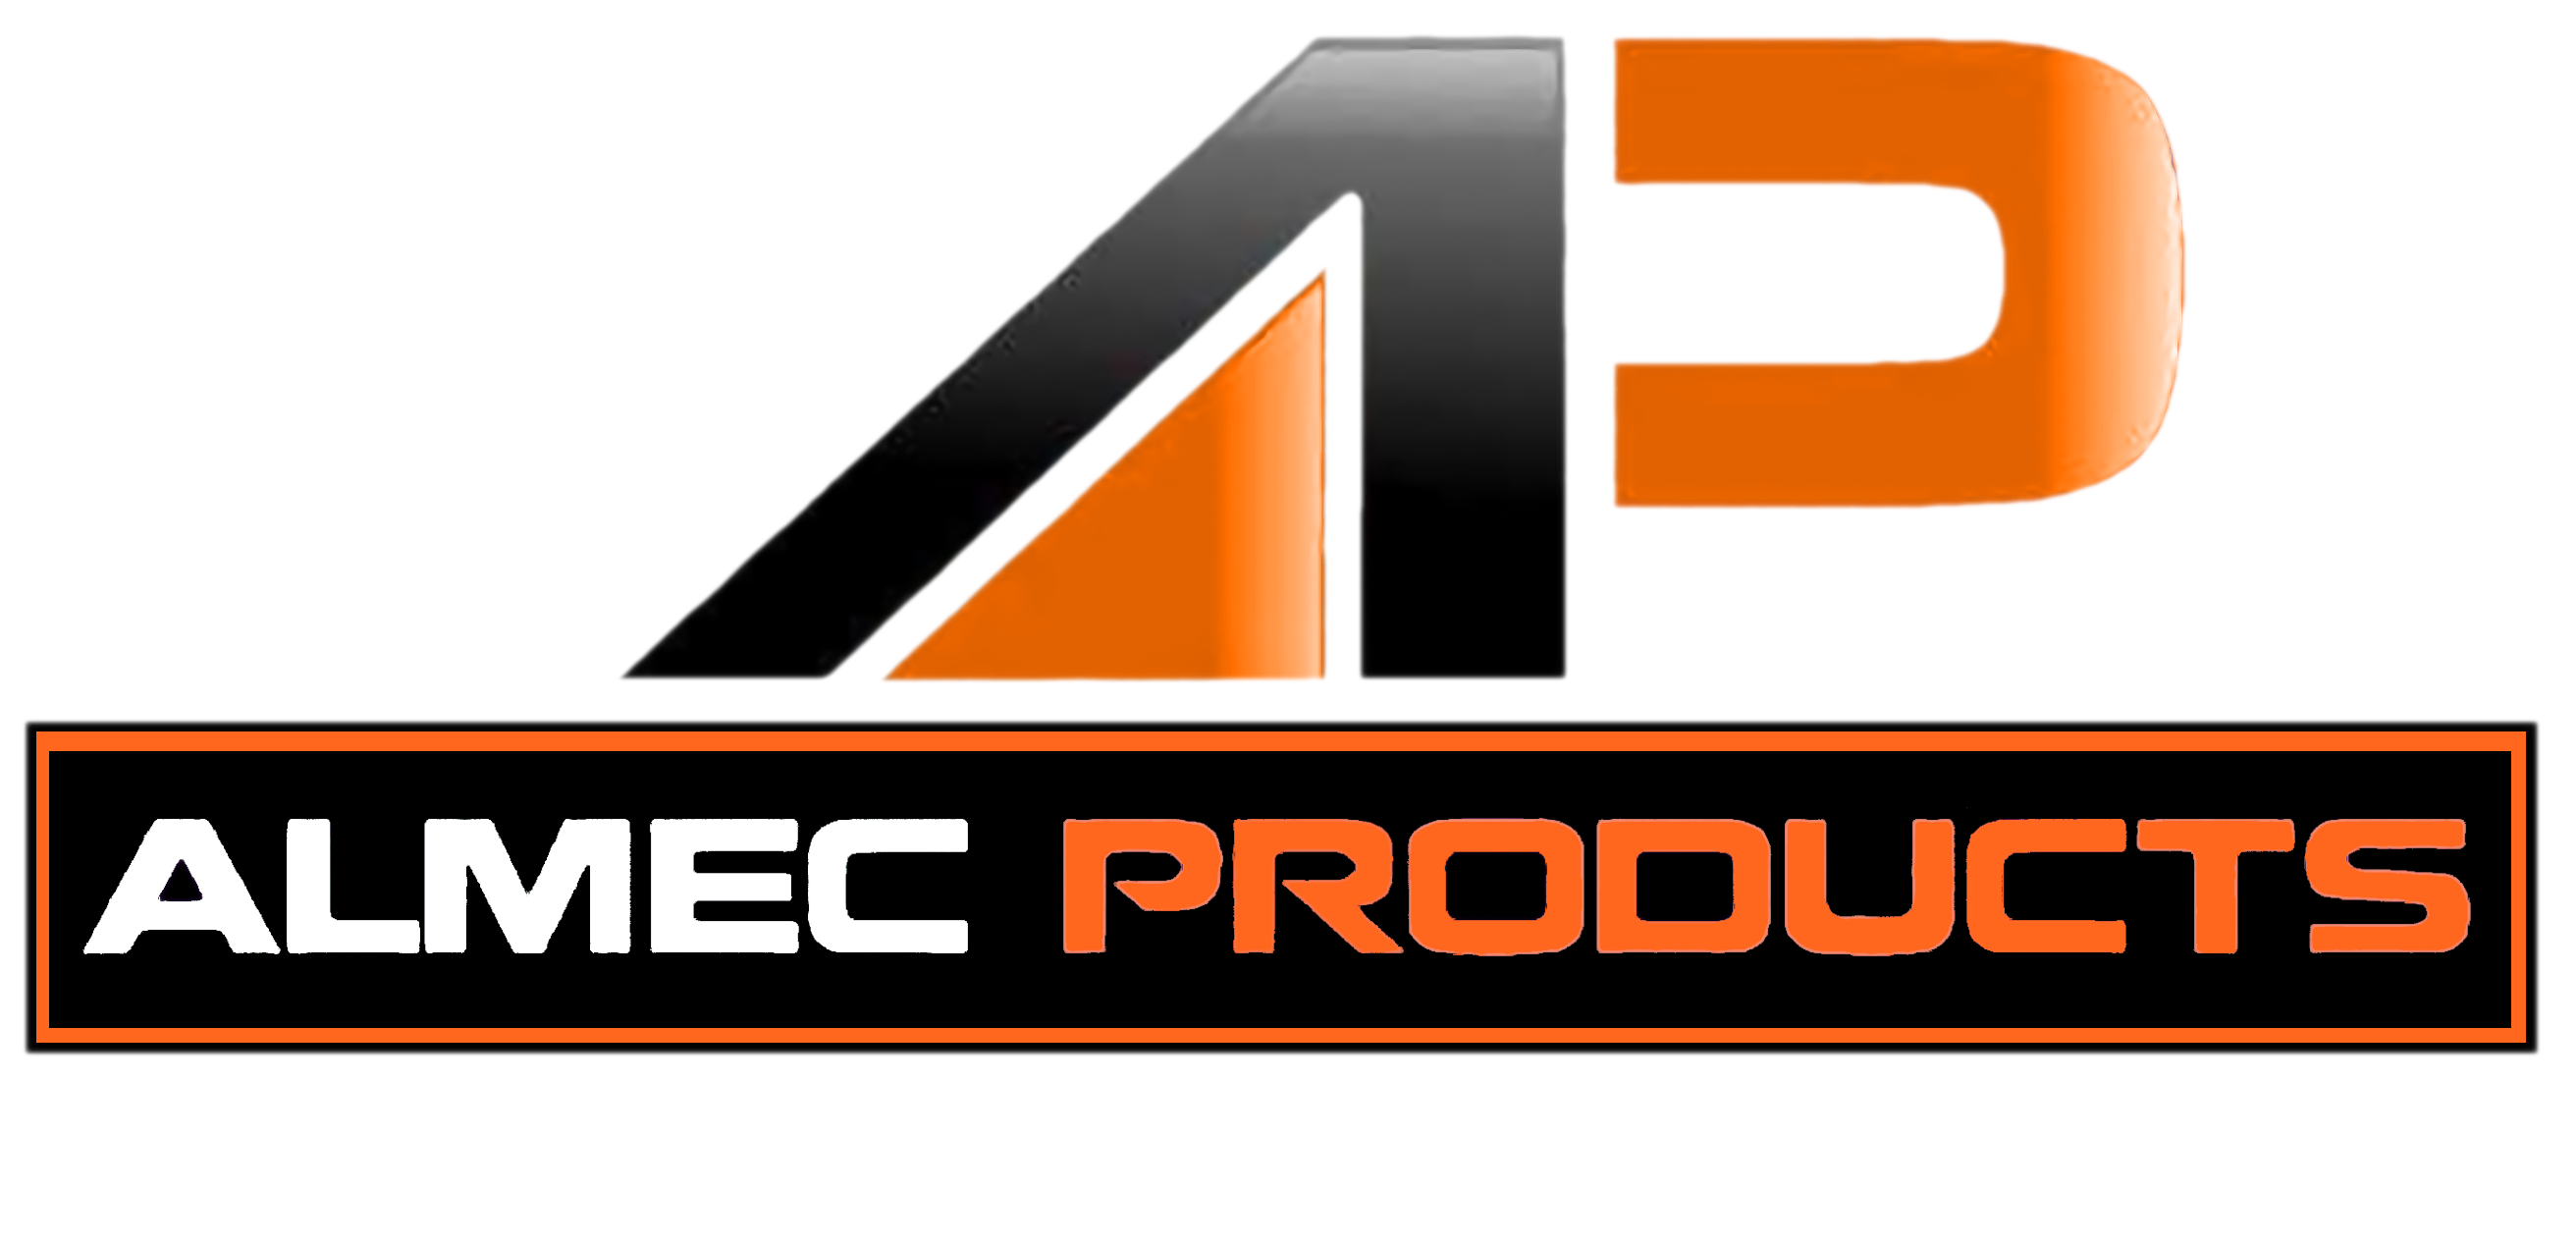 ALMEC PRODUCTS